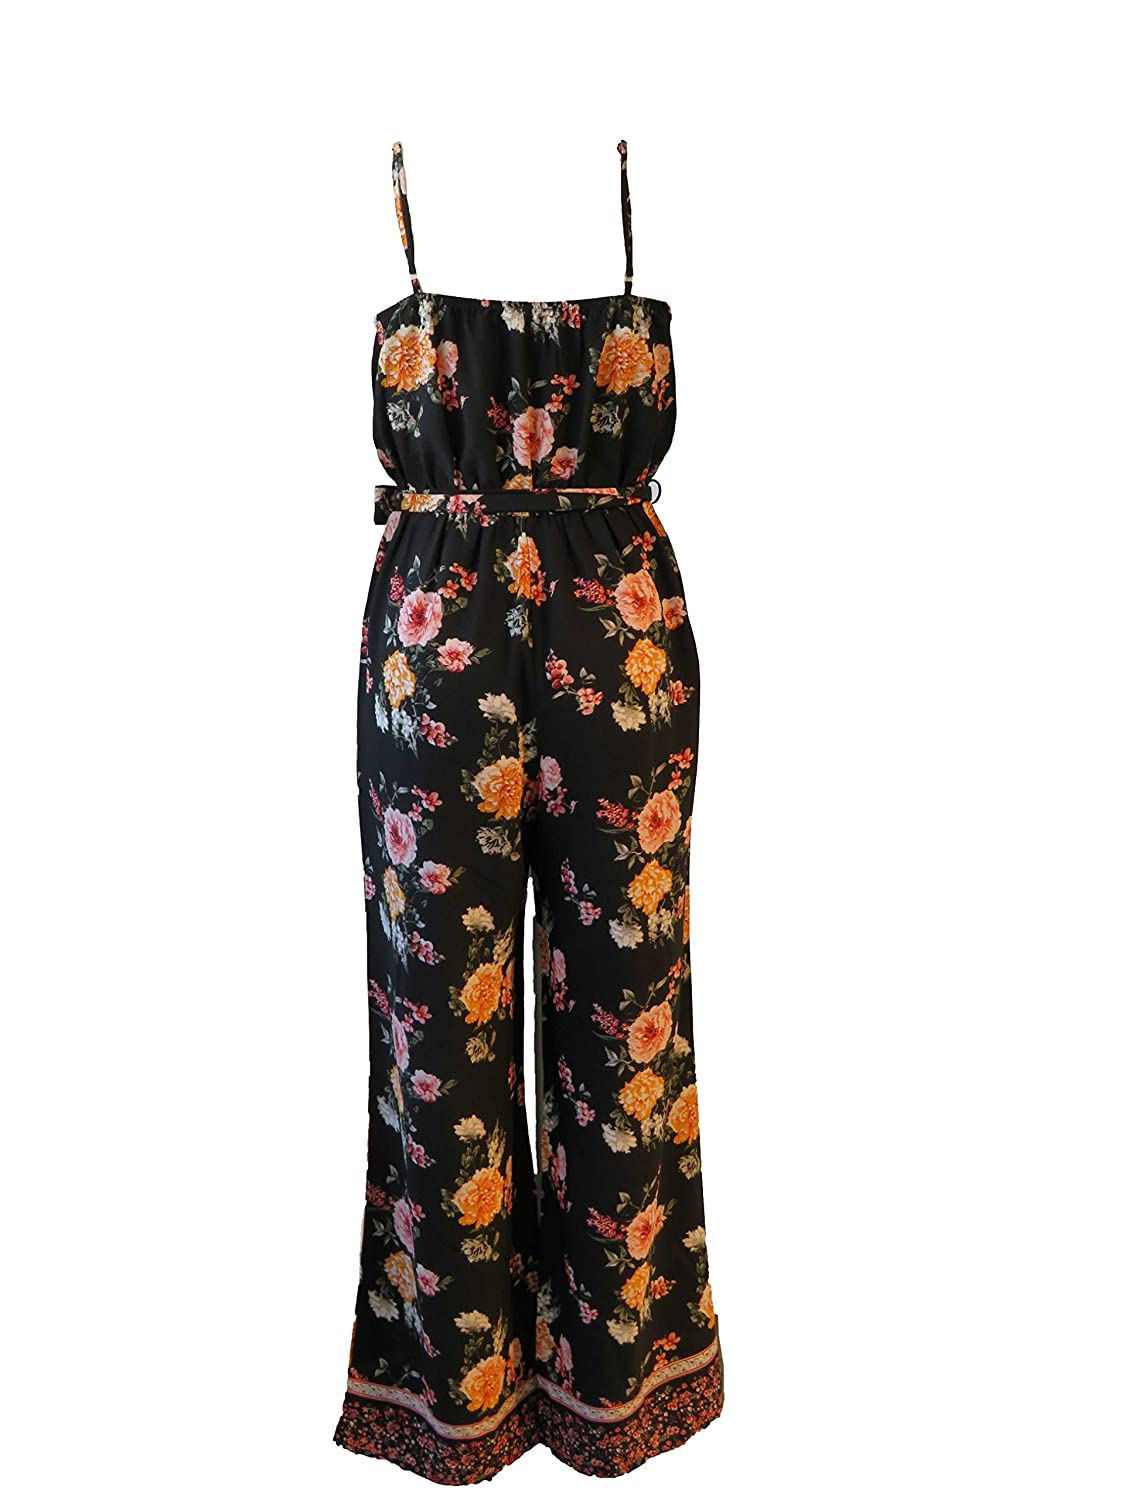 effff1d0168 Womens Wide Leg Black Floral Jumpsuit with Thin Straps and Belted at Waist   Amazon.ca  Clothing   Accessories